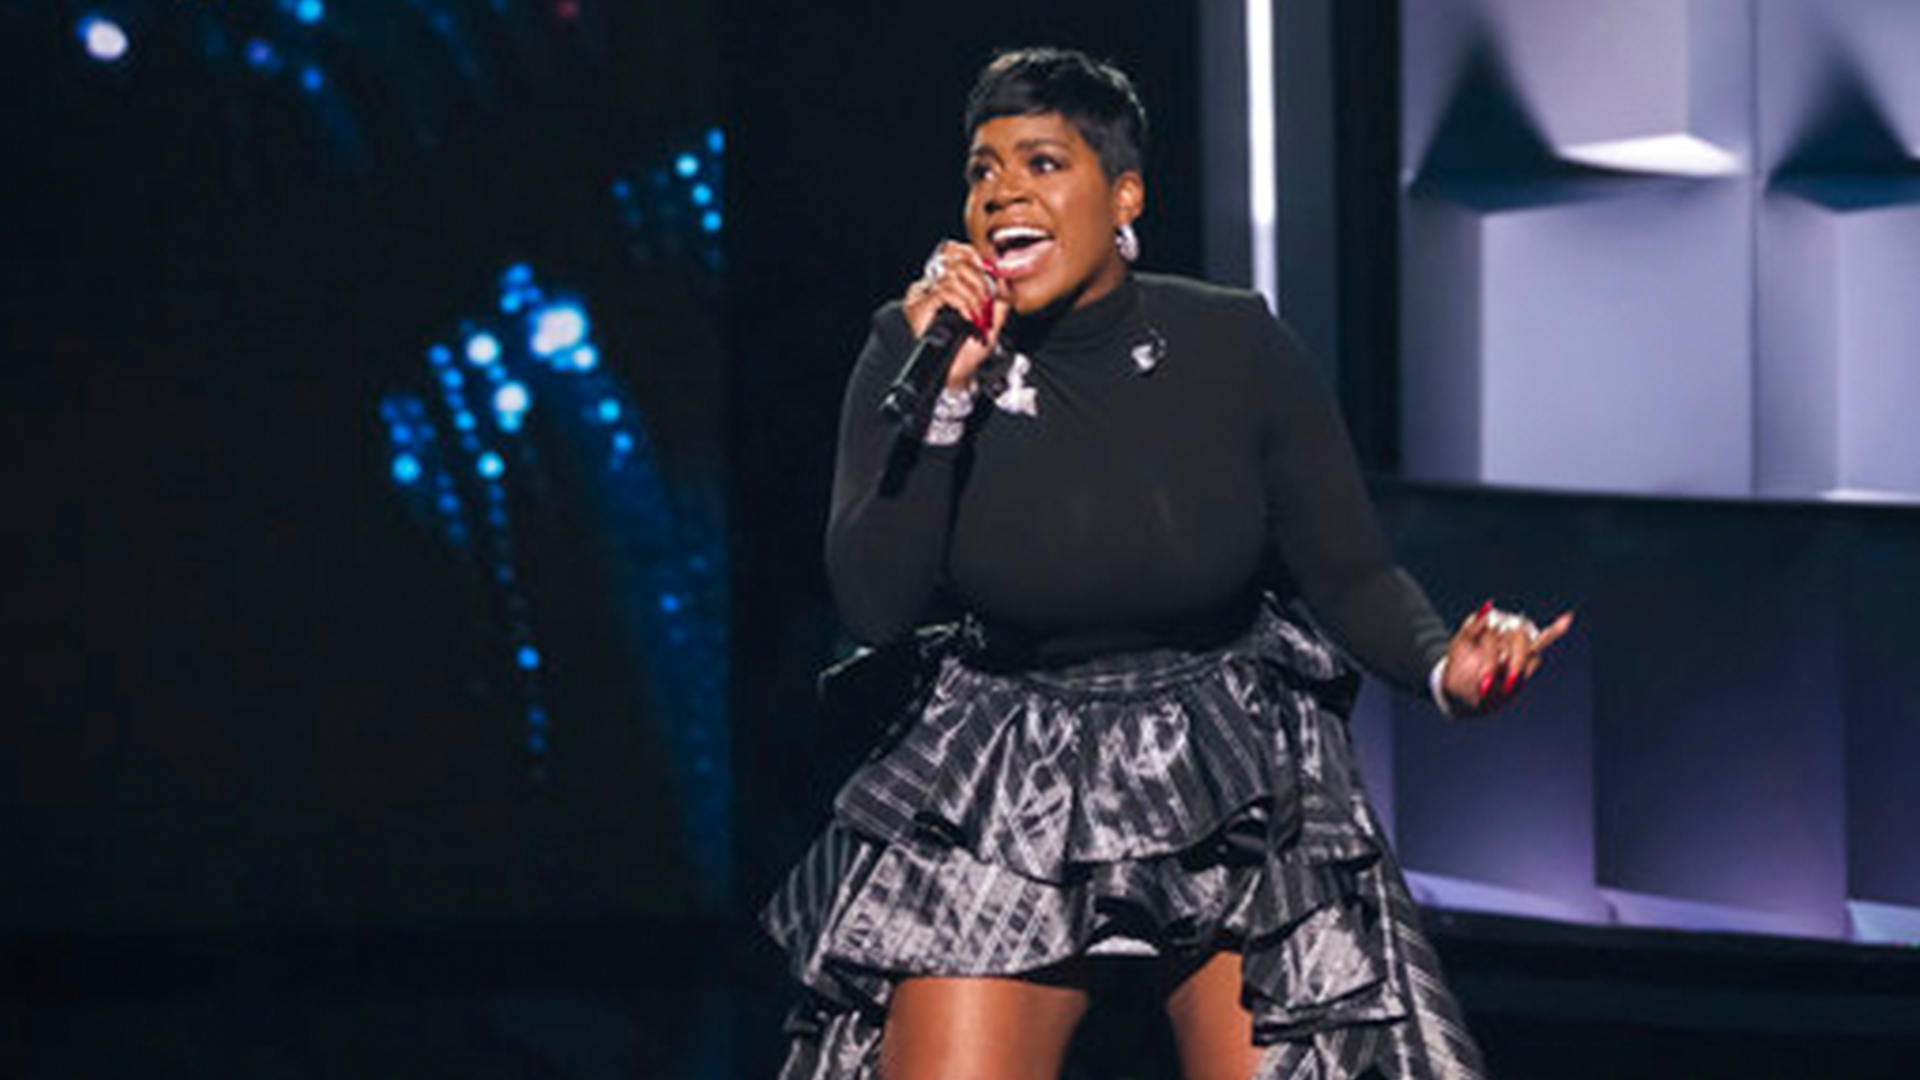 Grammy-winning singer Fantasia coming to Tampa | WFLA